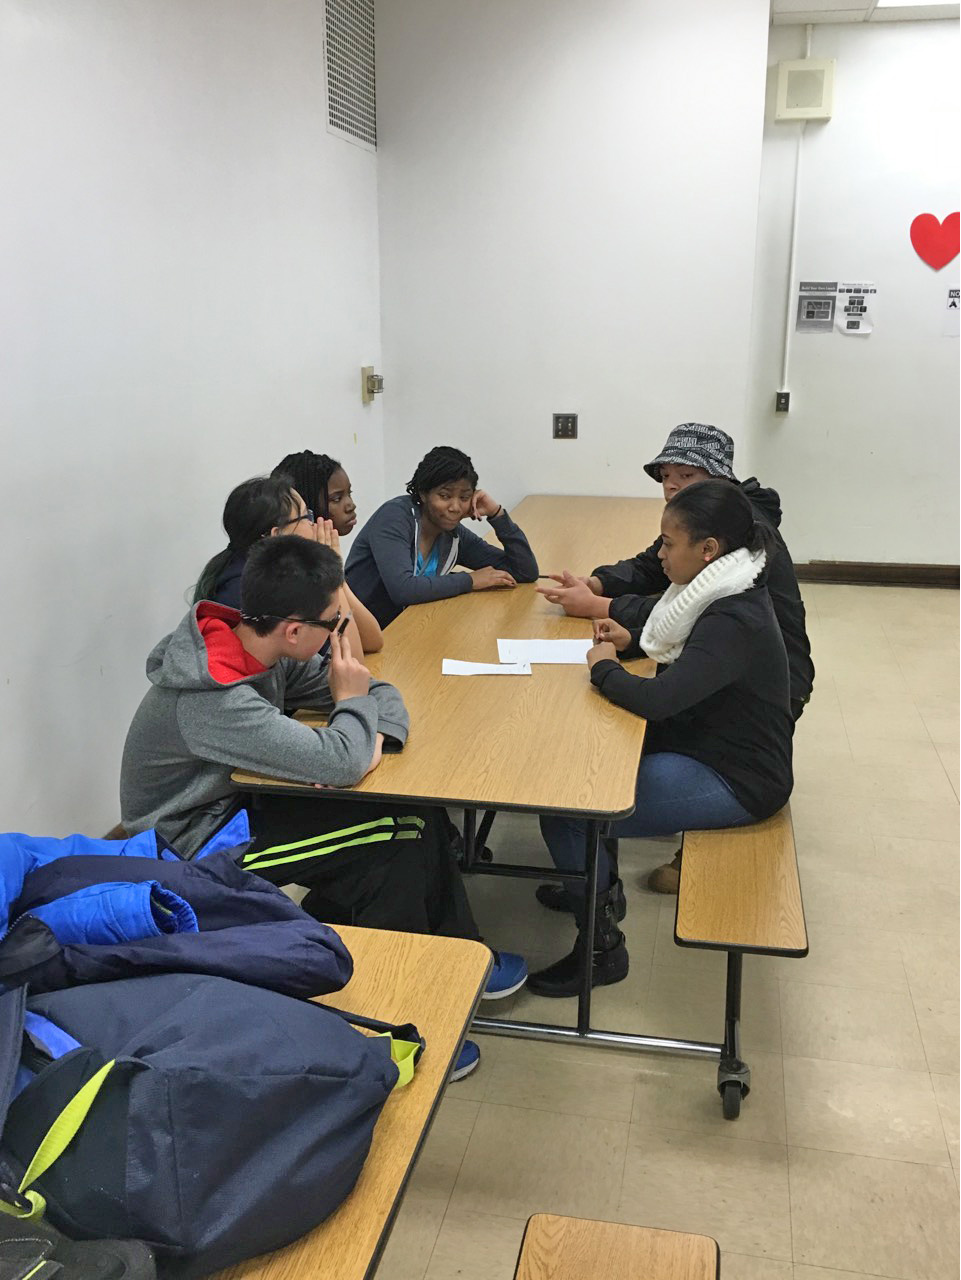 Act Scores For Colleges >> Coaching Elementary Students | Gwendolyn Brooks College ...